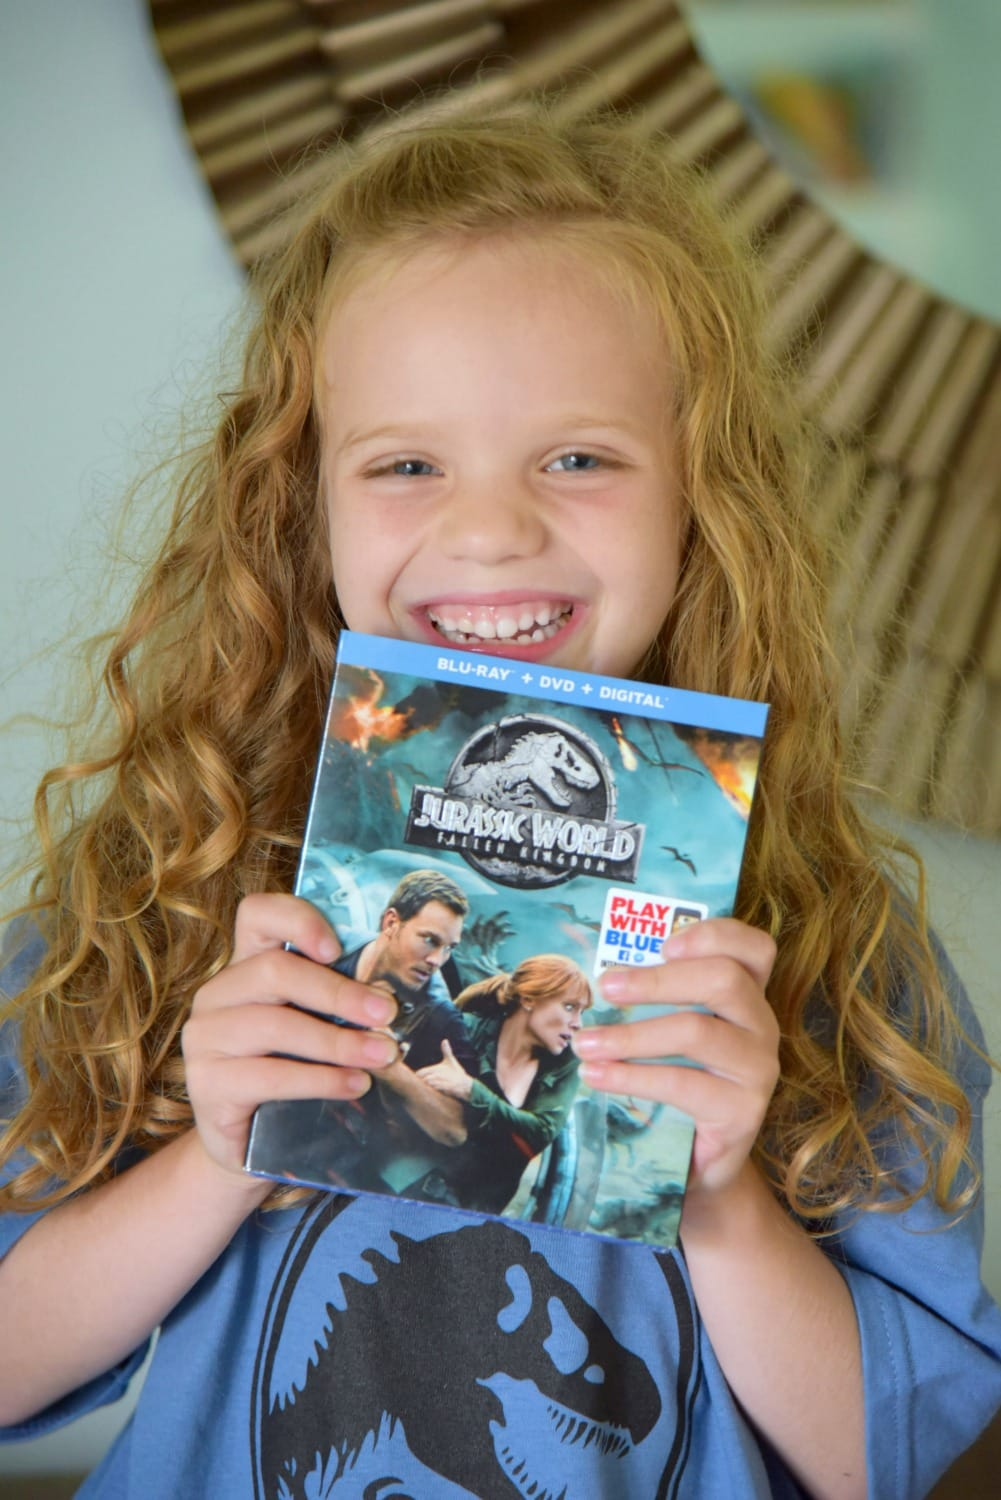 Jurassic World DVD